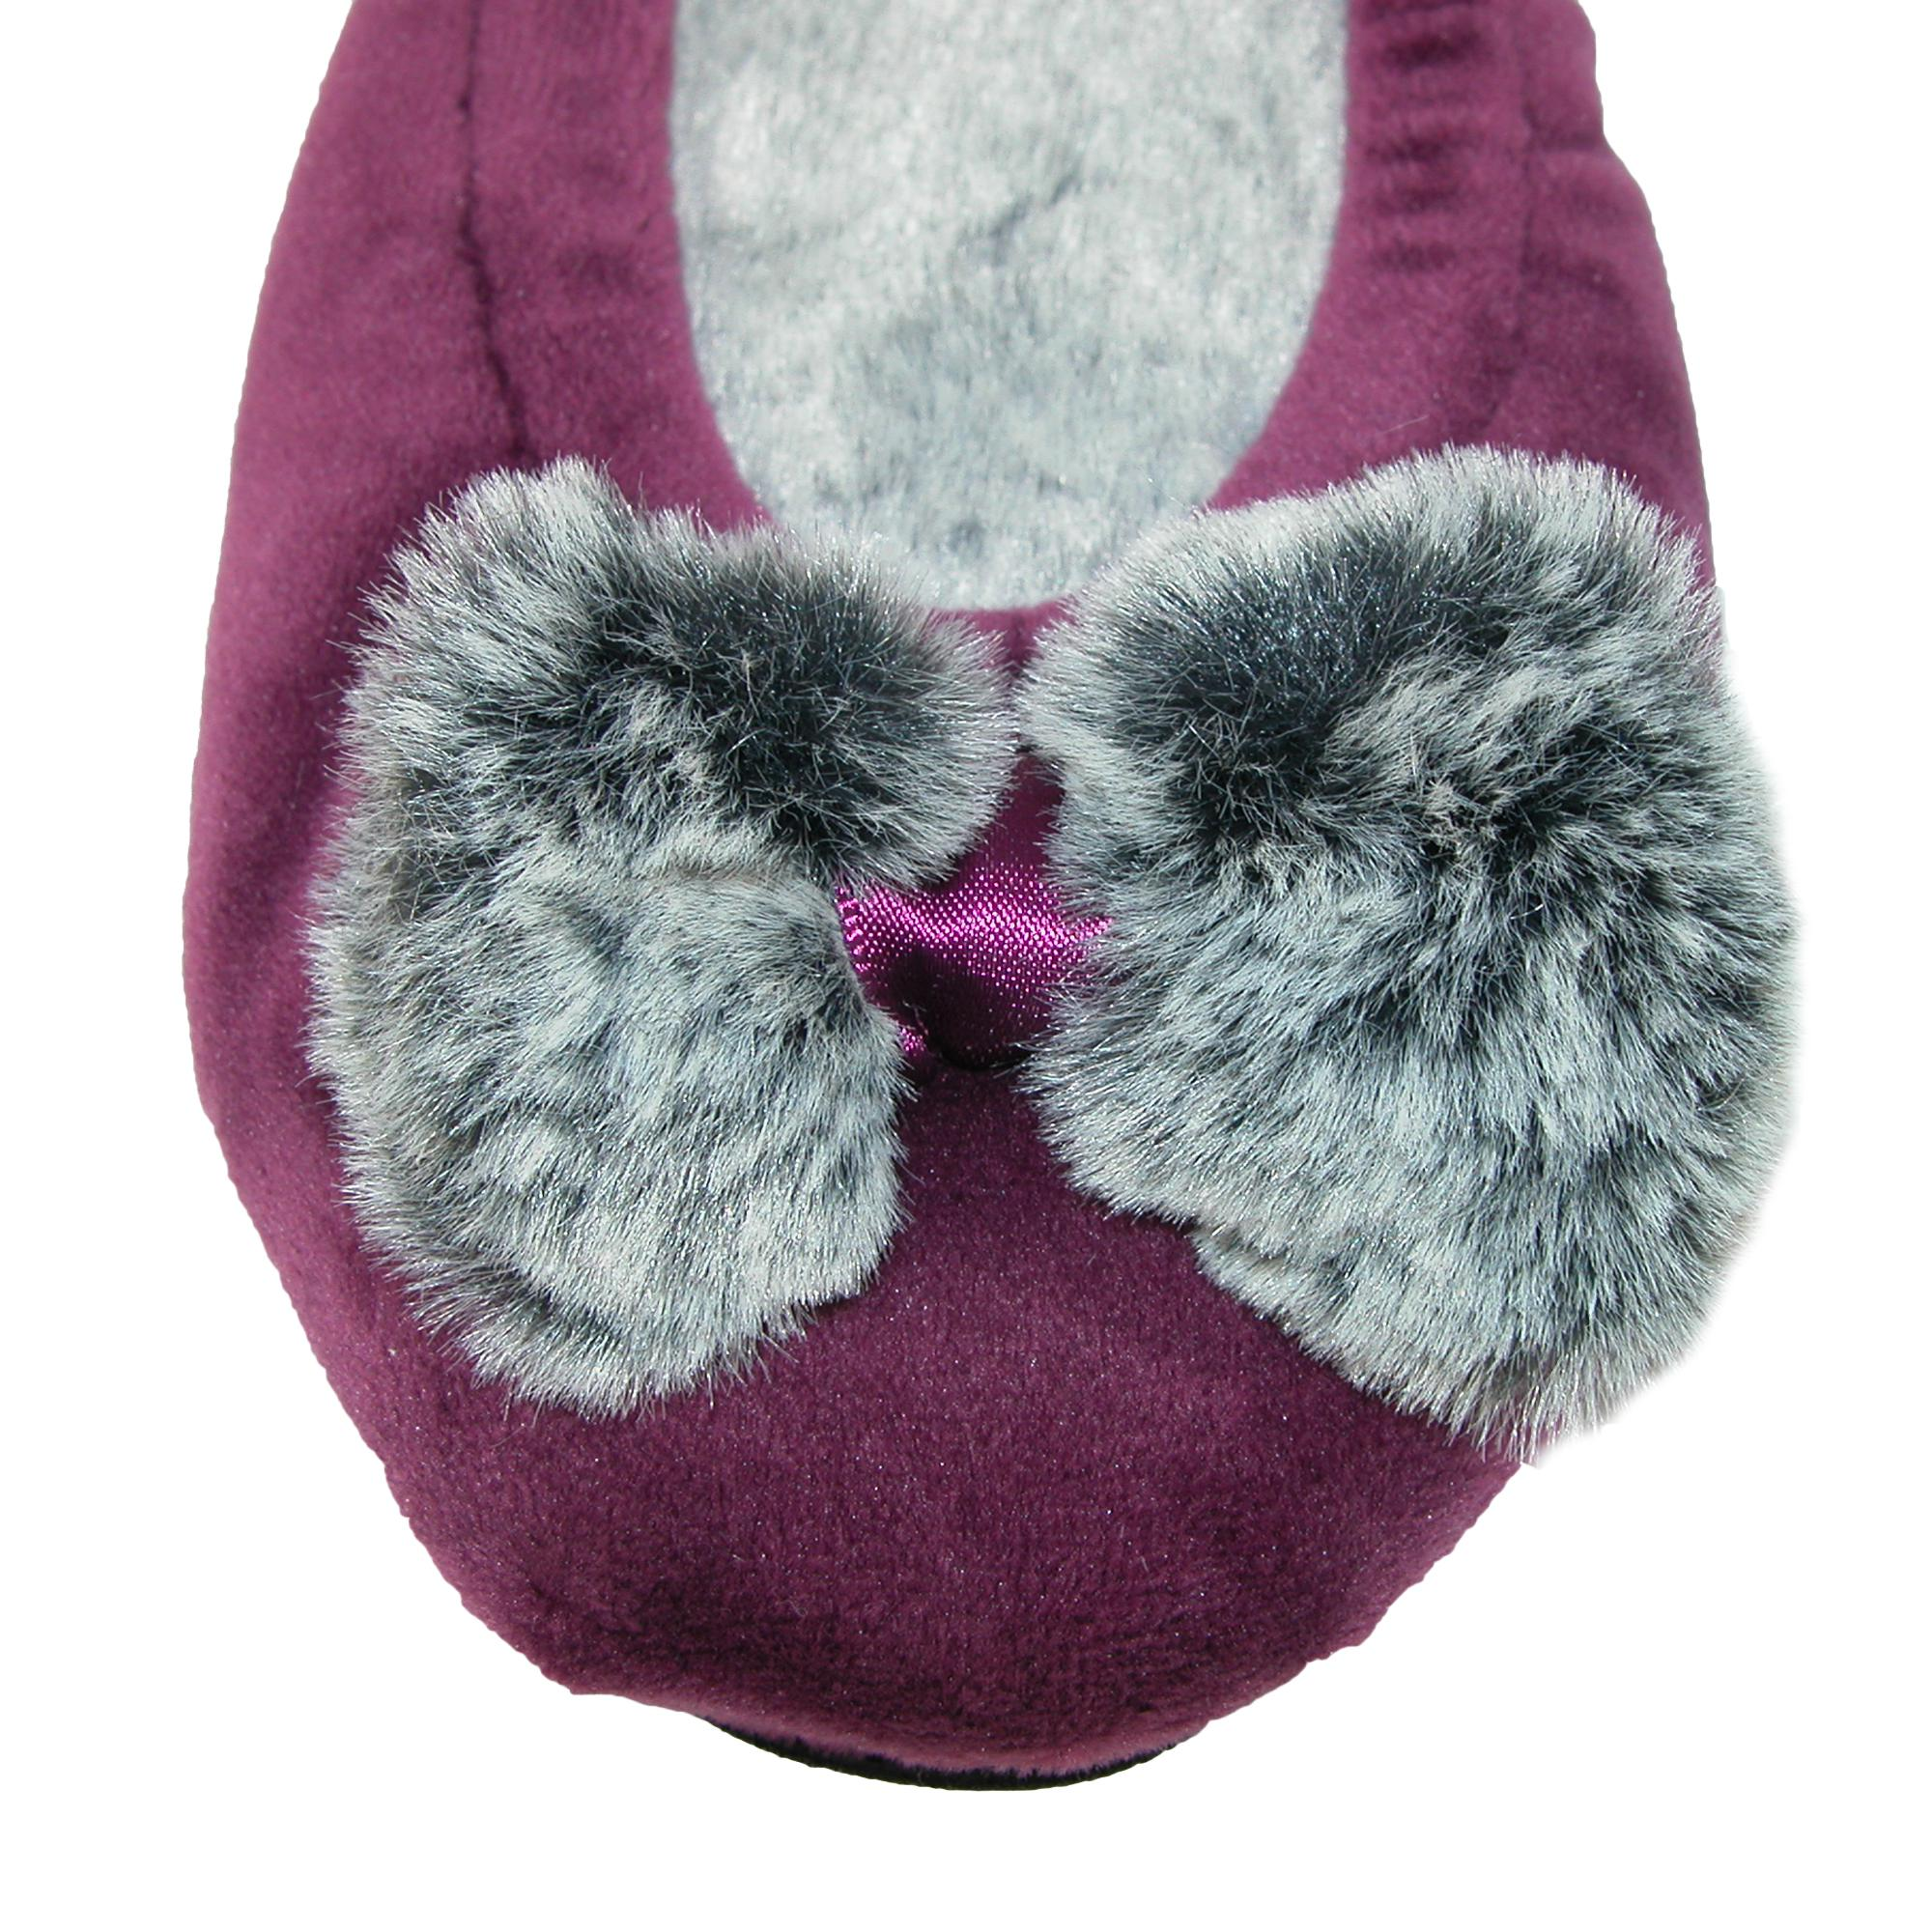 New-Dearfoams-Women-039-s-Velour-Ballerina-Slippers-with-Frosted-Pile thumbnail 5